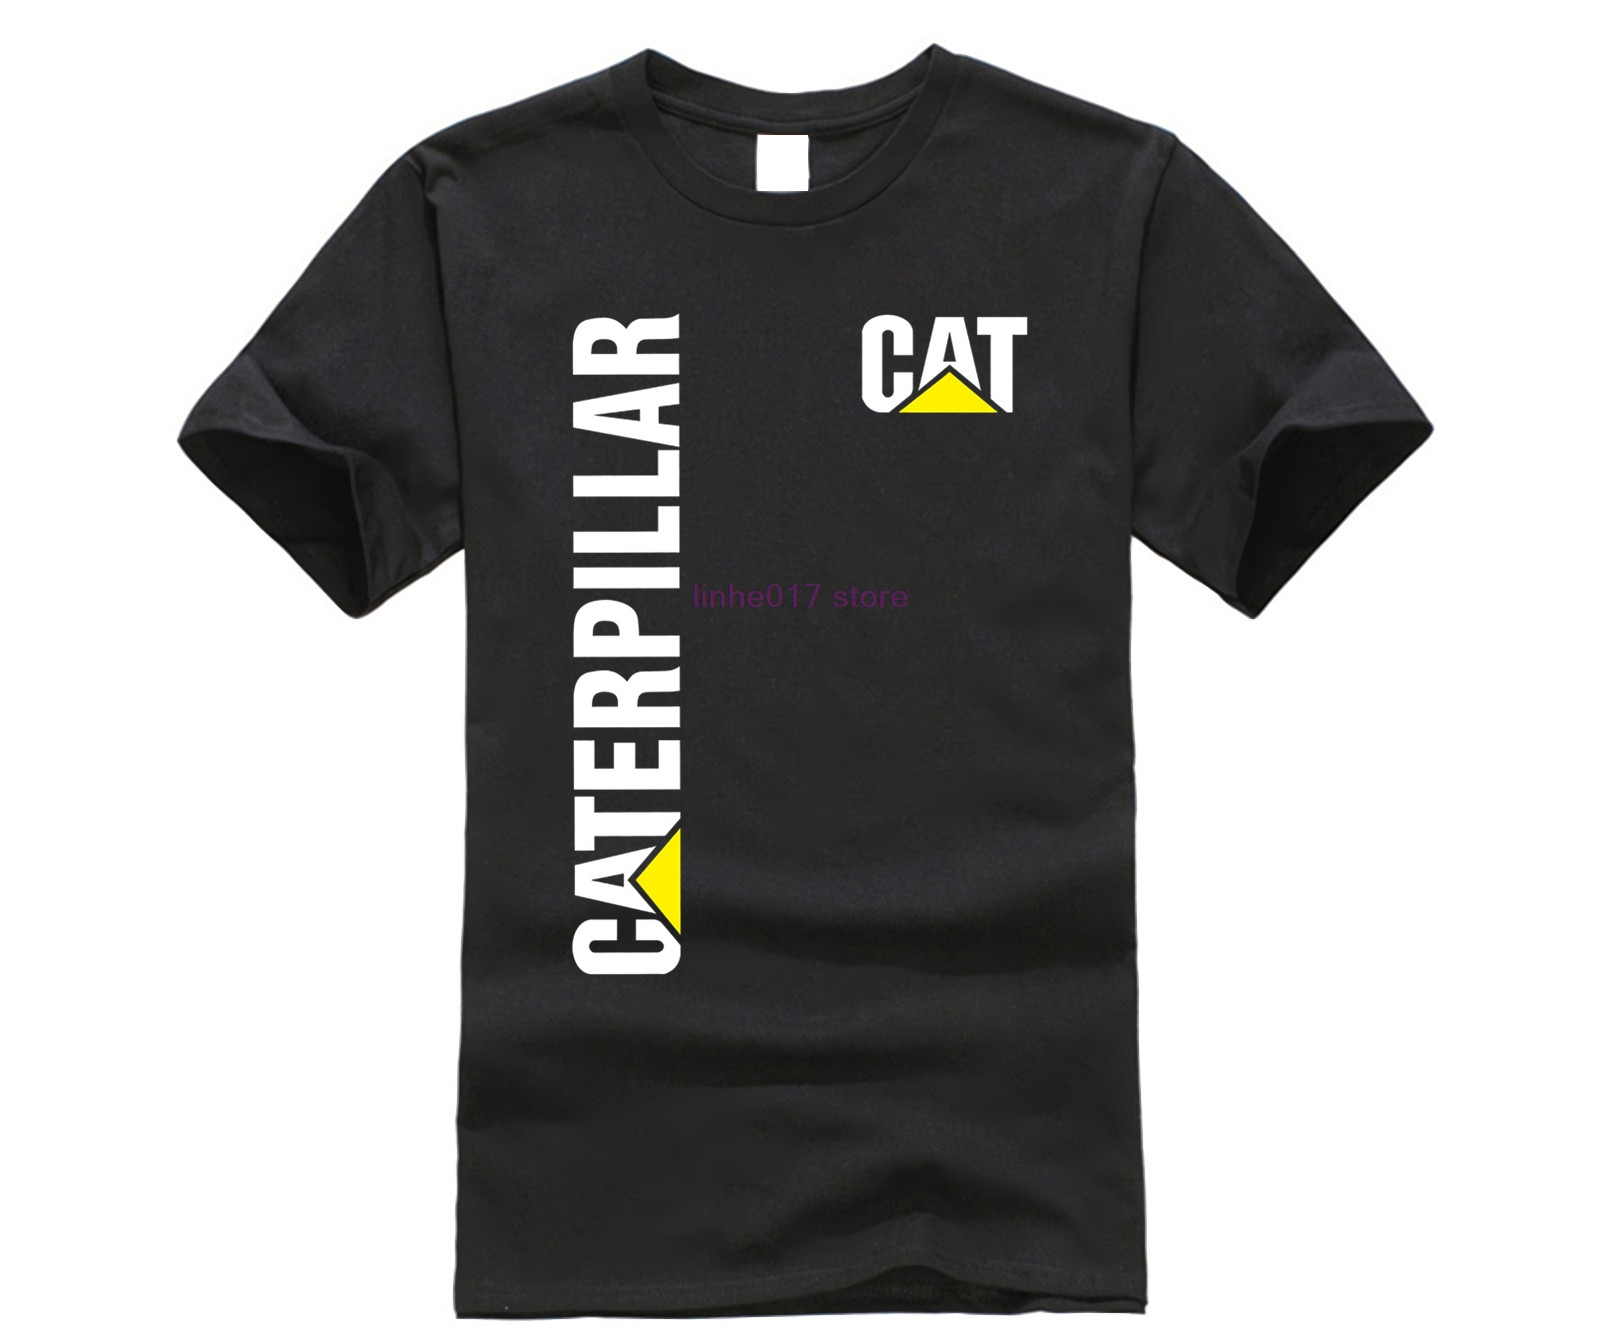 New Caterpillar CAT Men's Cotton Comfort   T  -  Shirt   all size discout hot new fashion   T     Shirt   top free shipping 2018 officia